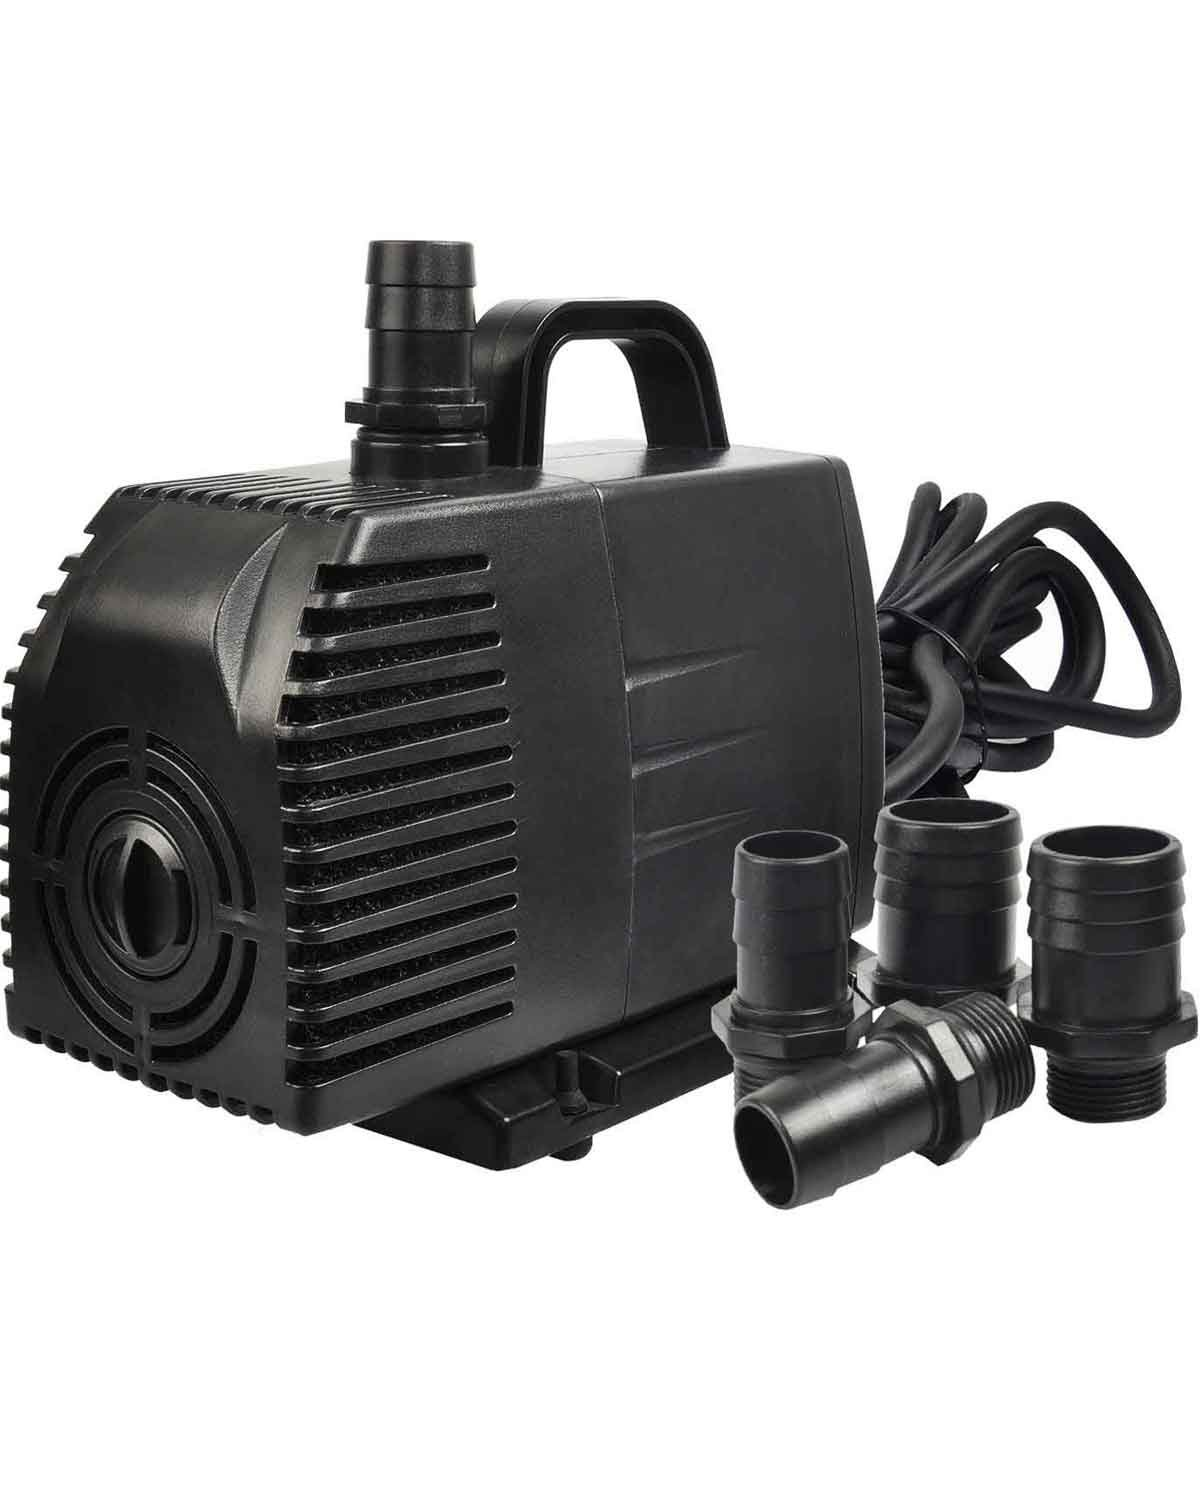 Simple Deluxe 1056 GPH Submersible Pump with 15' Cord, Water Pump for Fish Tank, Hydroponics, Aquaponics, Fountains, Ponds, Statuary, Aquariums & Inline by Simple Deluxe